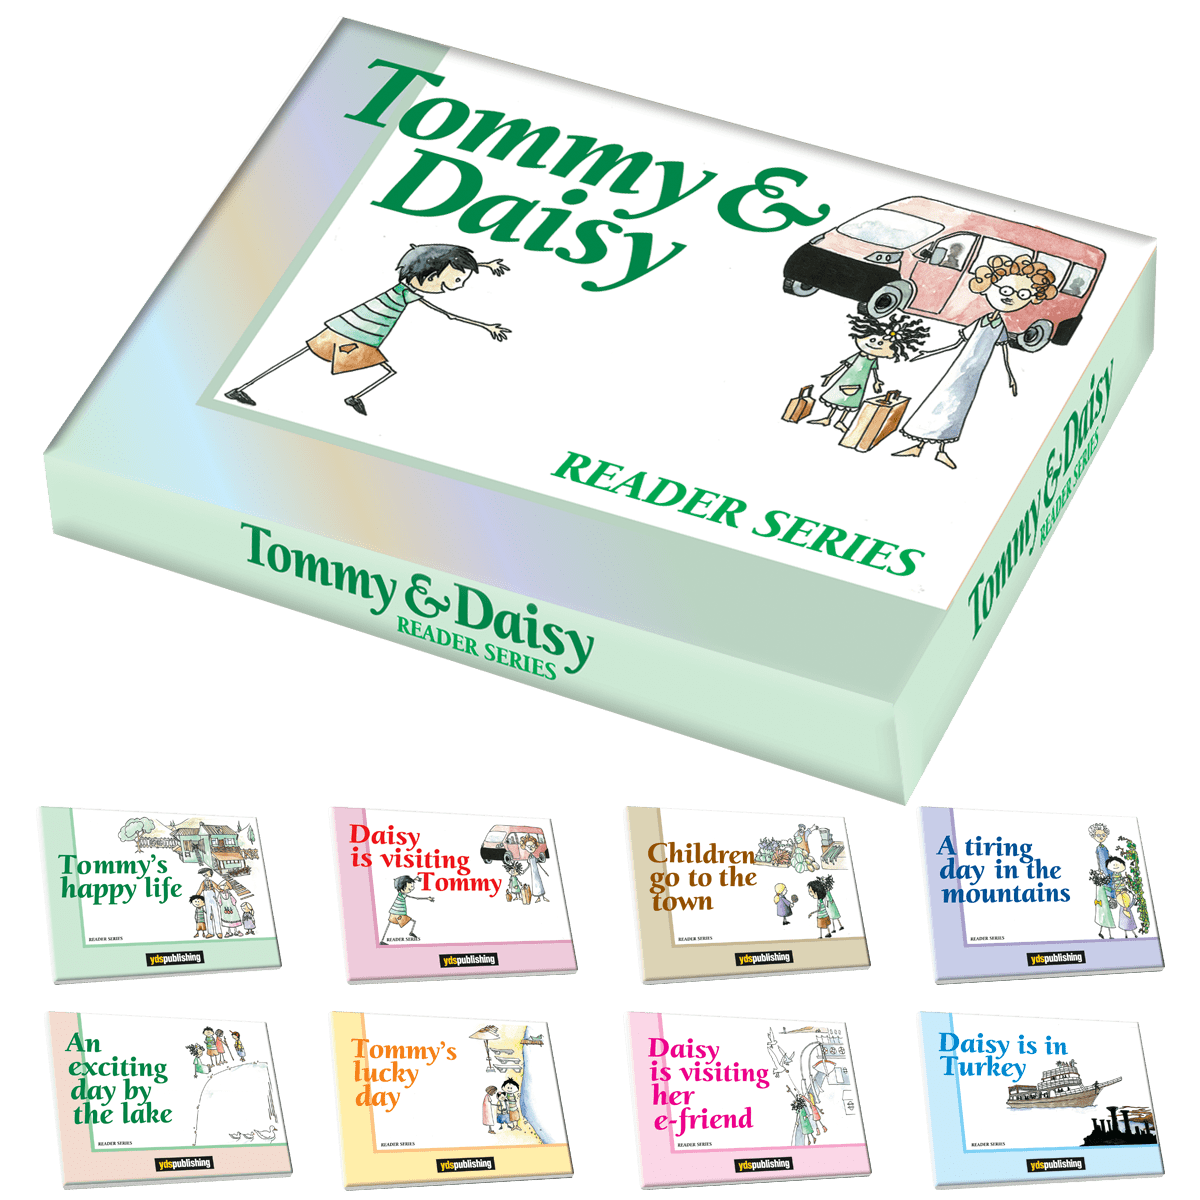 Tommy & Daisy Reader Series tommy & daisy reader series -  Tommy & Daisy Reader Series